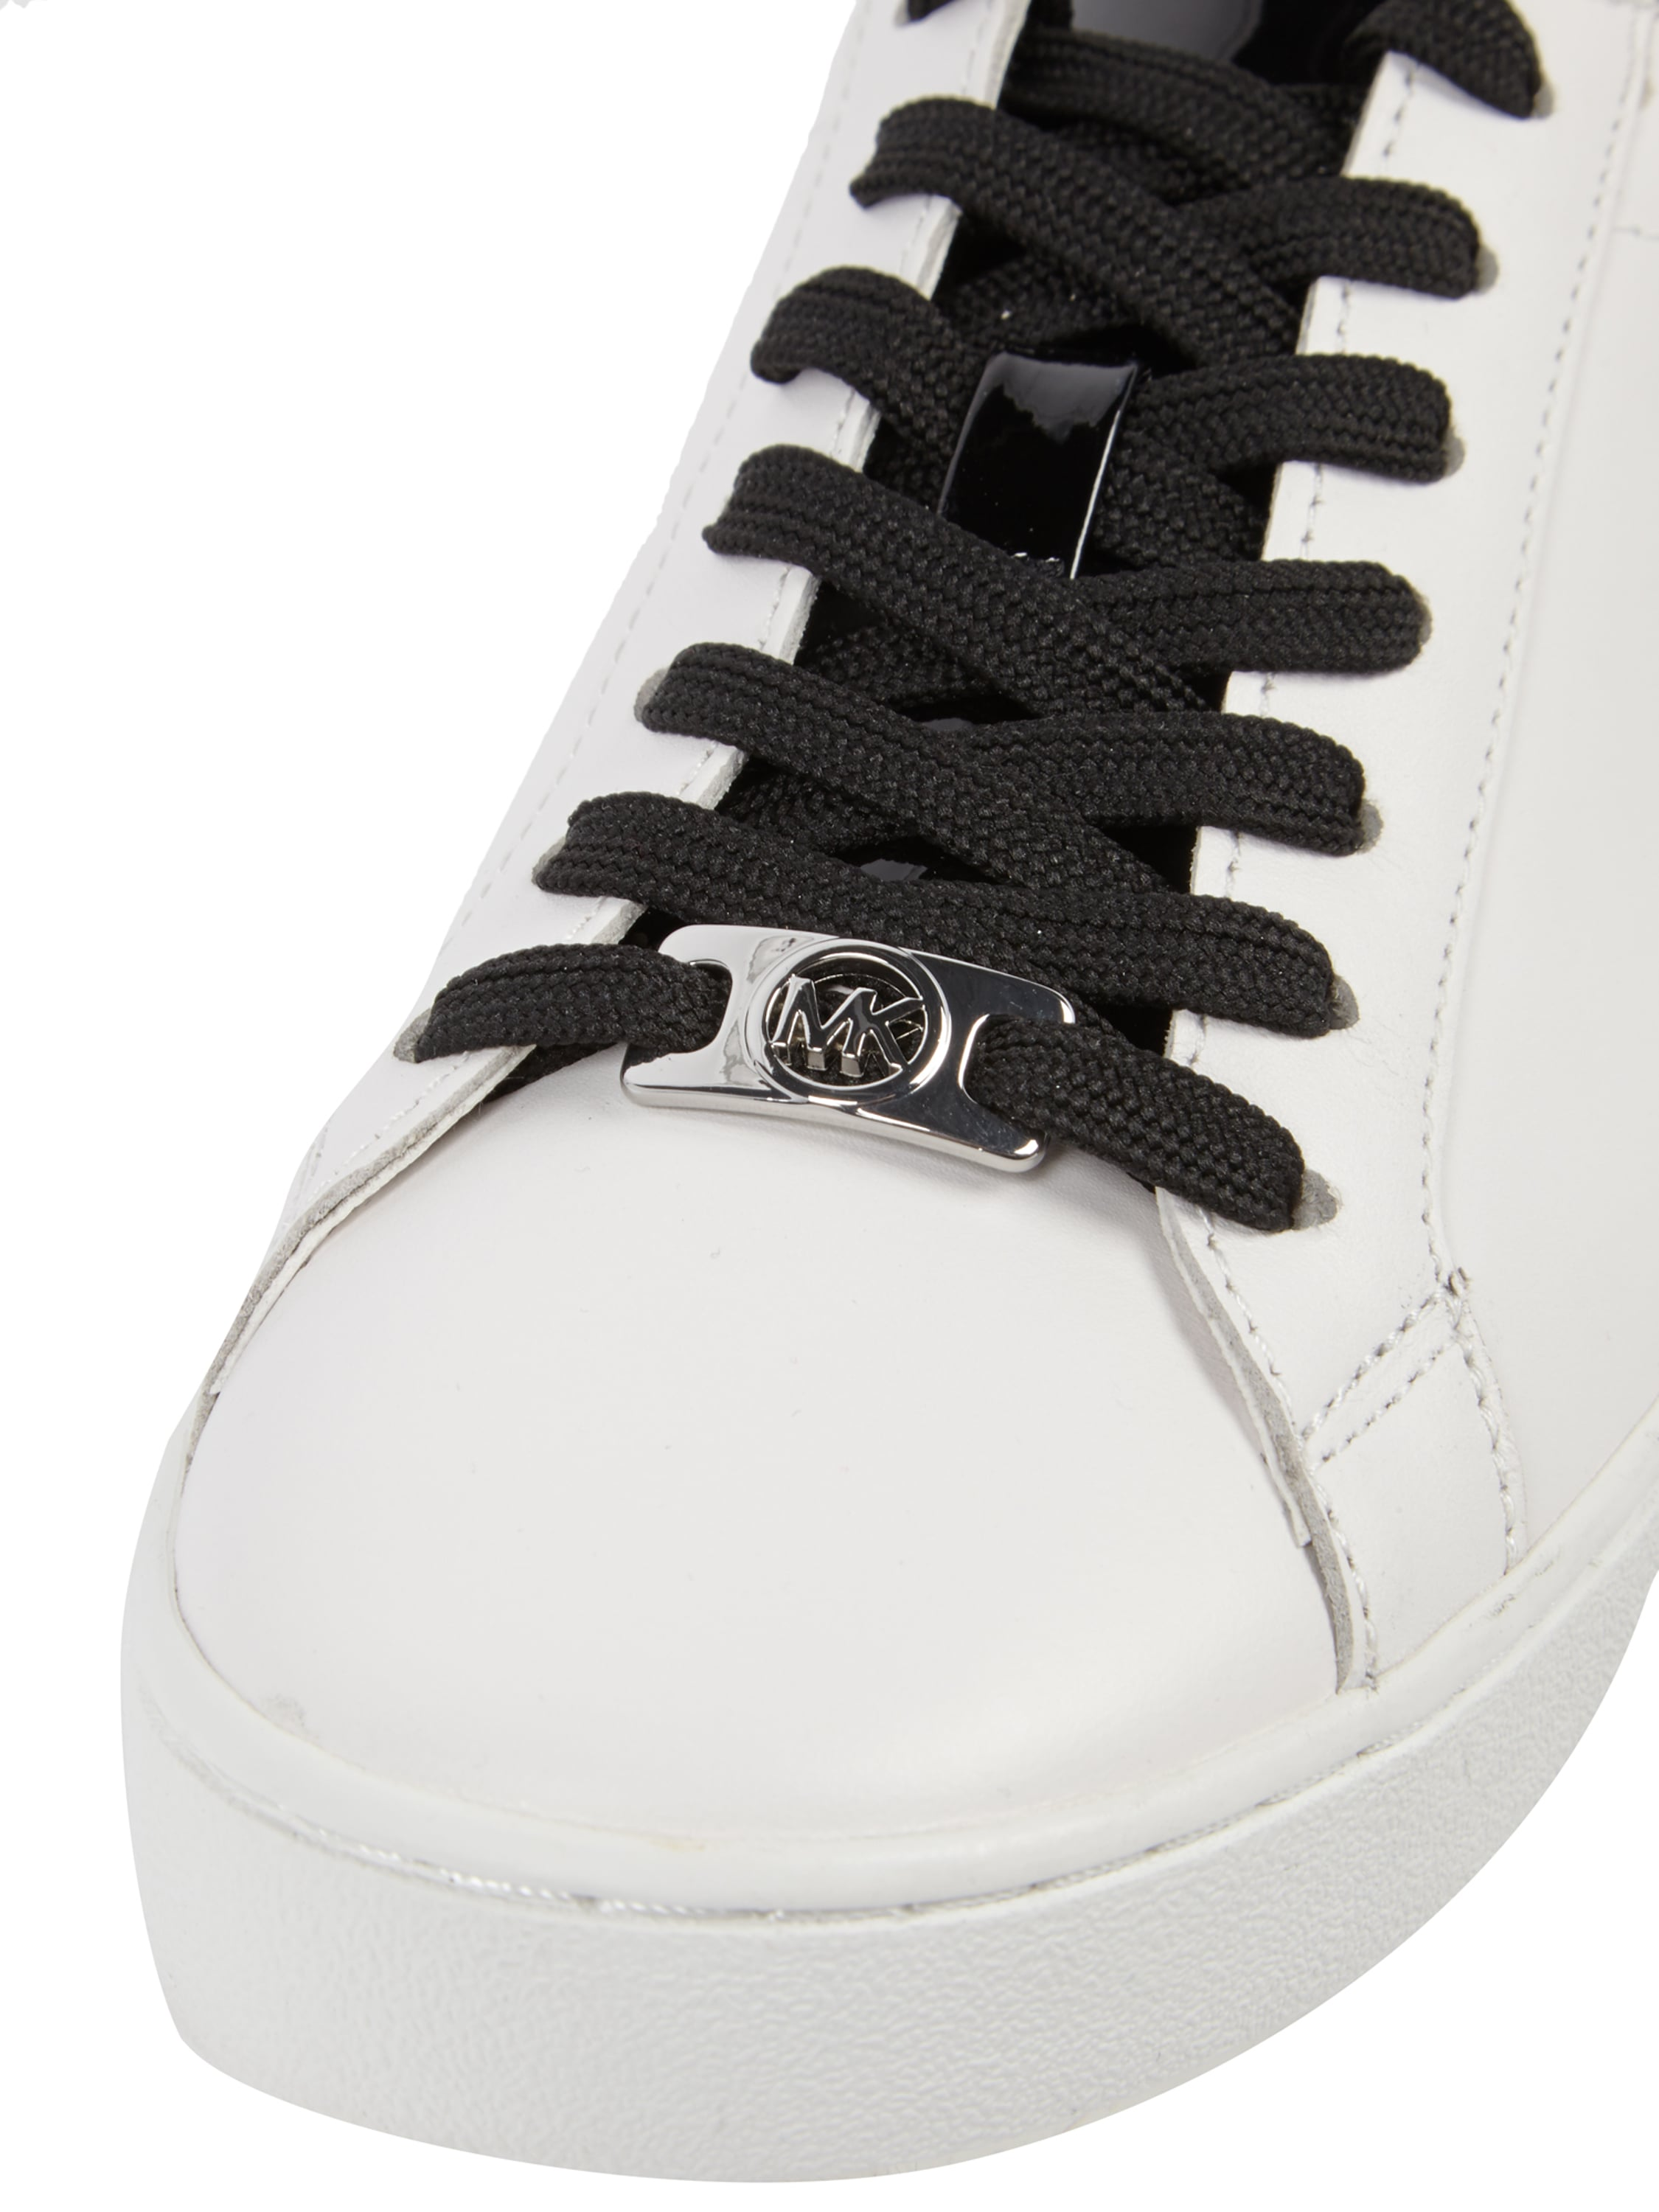 michael kors sneaker weiss file michael kors colby sneaker 43r5cofp2l kalbsleder wei optic. Black Bedroom Furniture Sets. Home Design Ideas